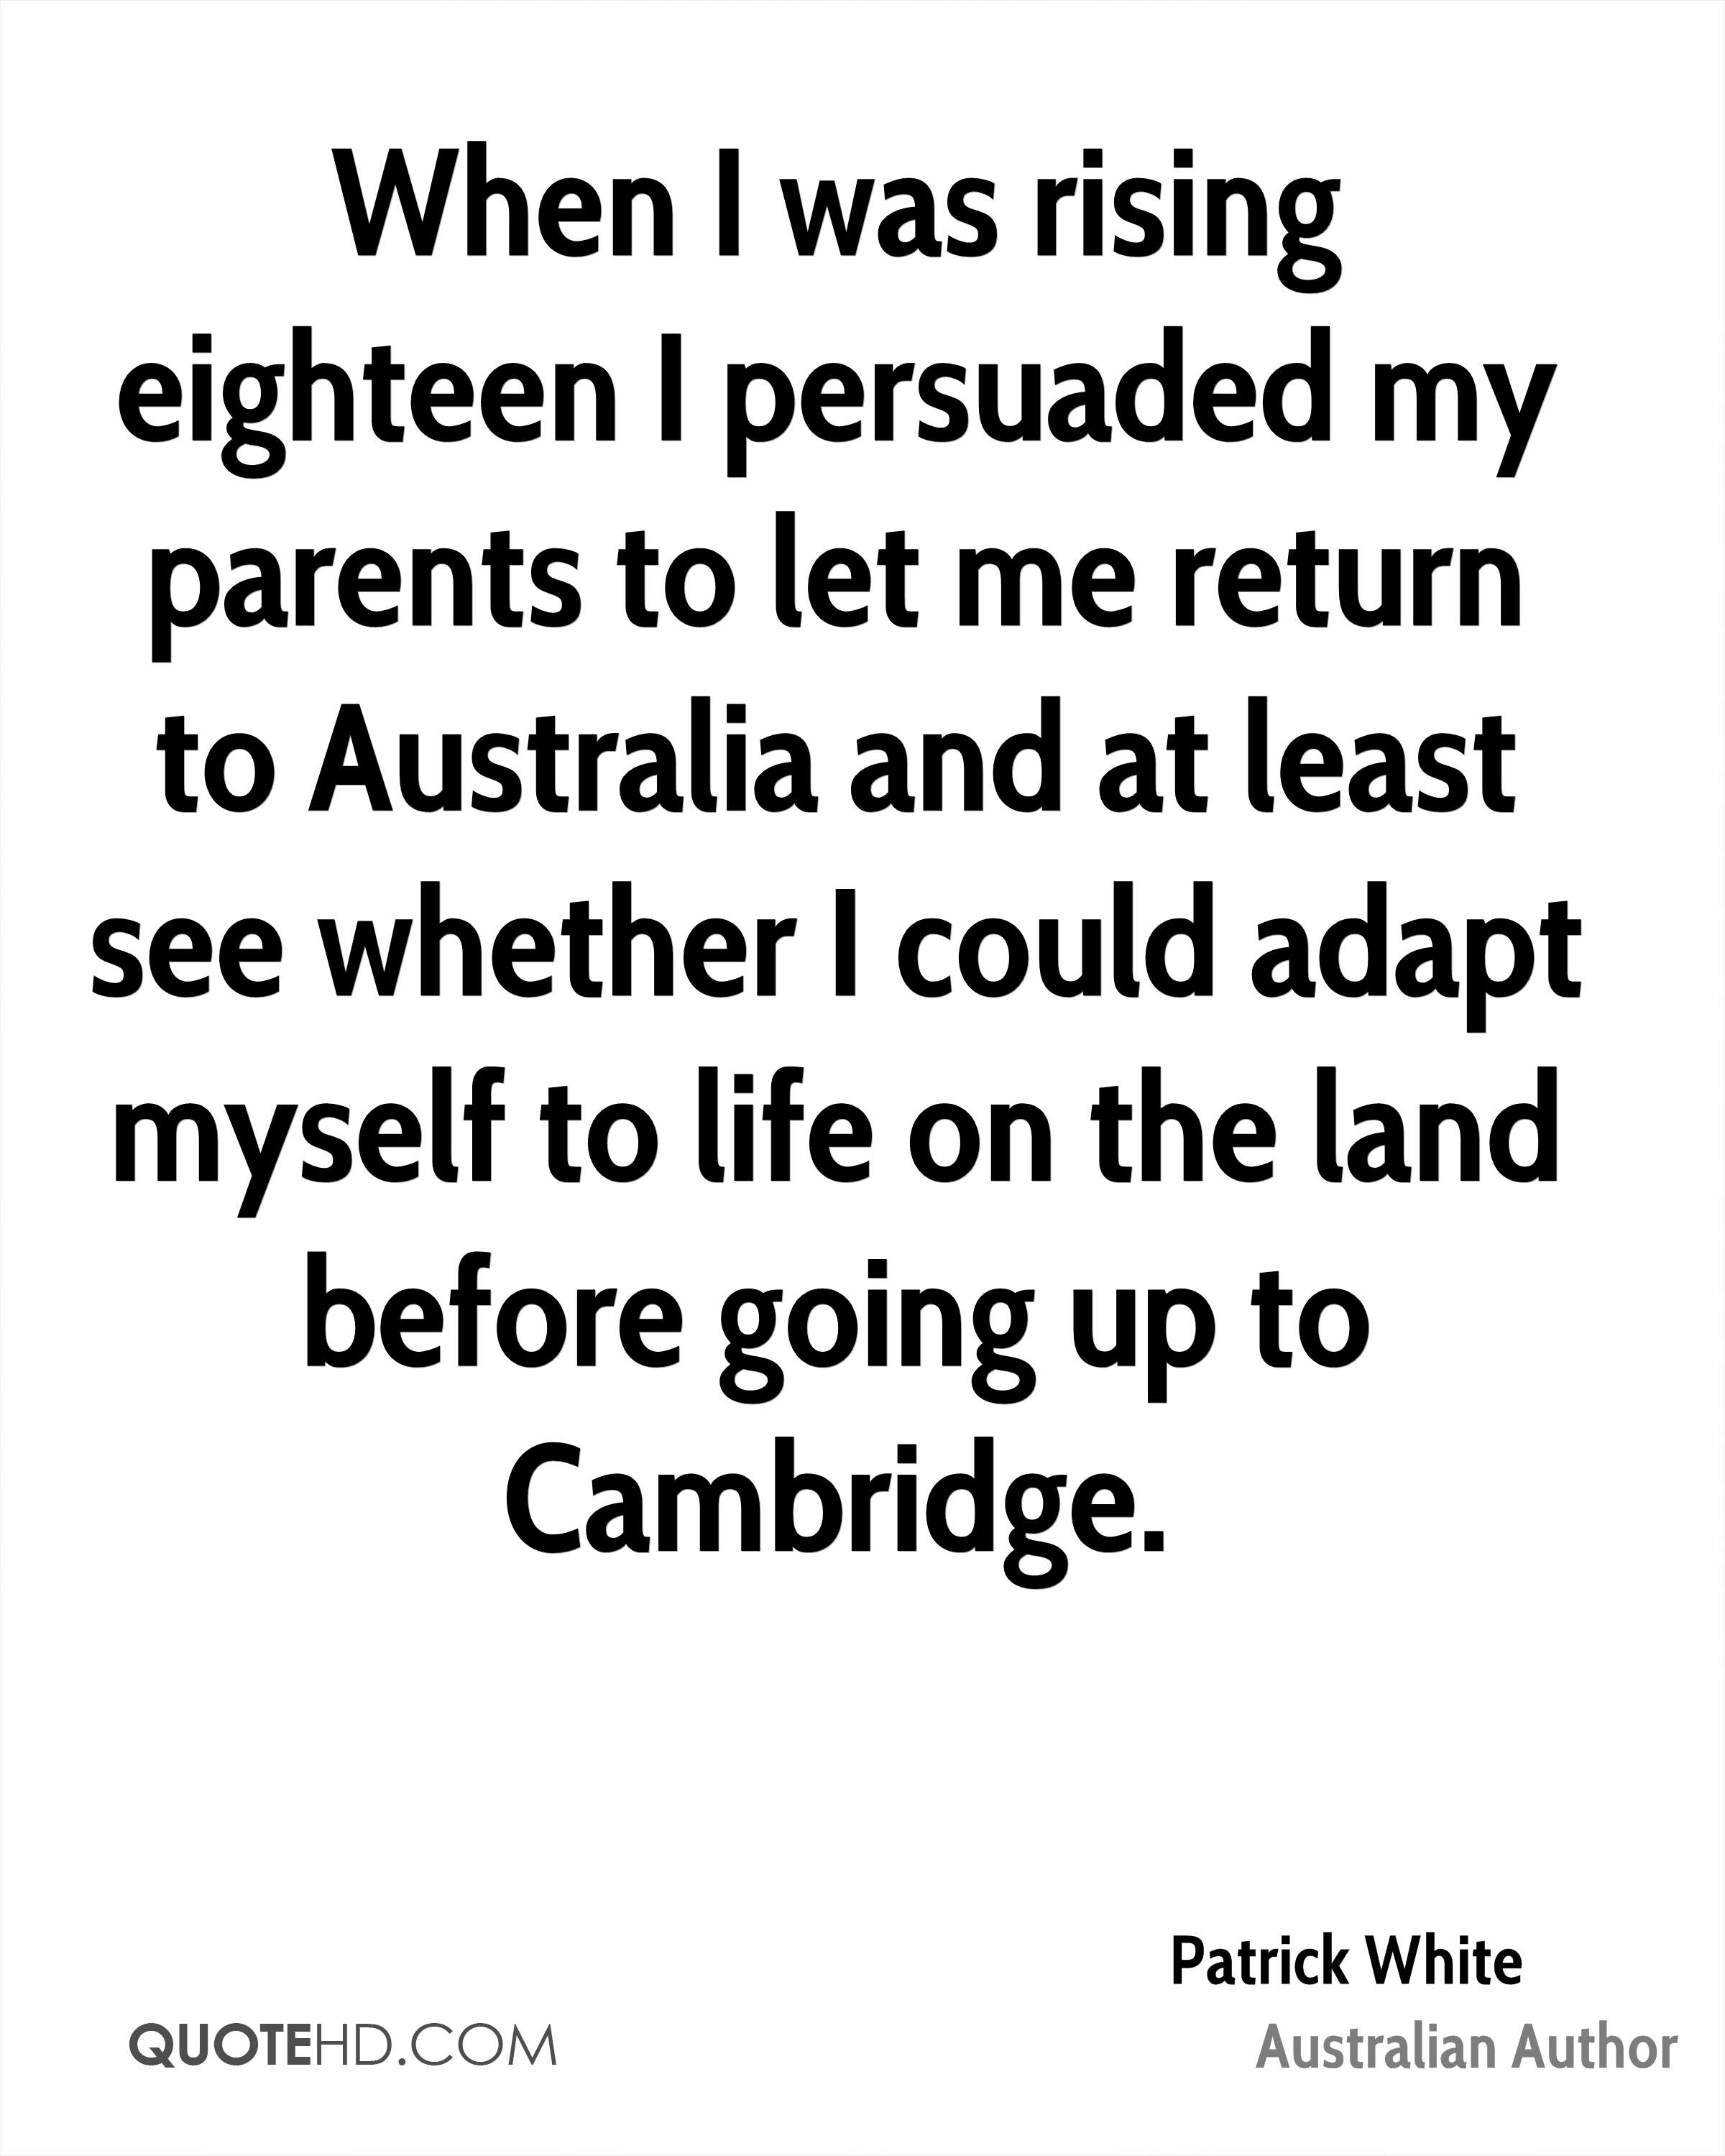 When I was rising eighteen I persuaded my parents to let me return to Australia and at least see whether I could adapt myself to life on the land before going up to Cambridge.